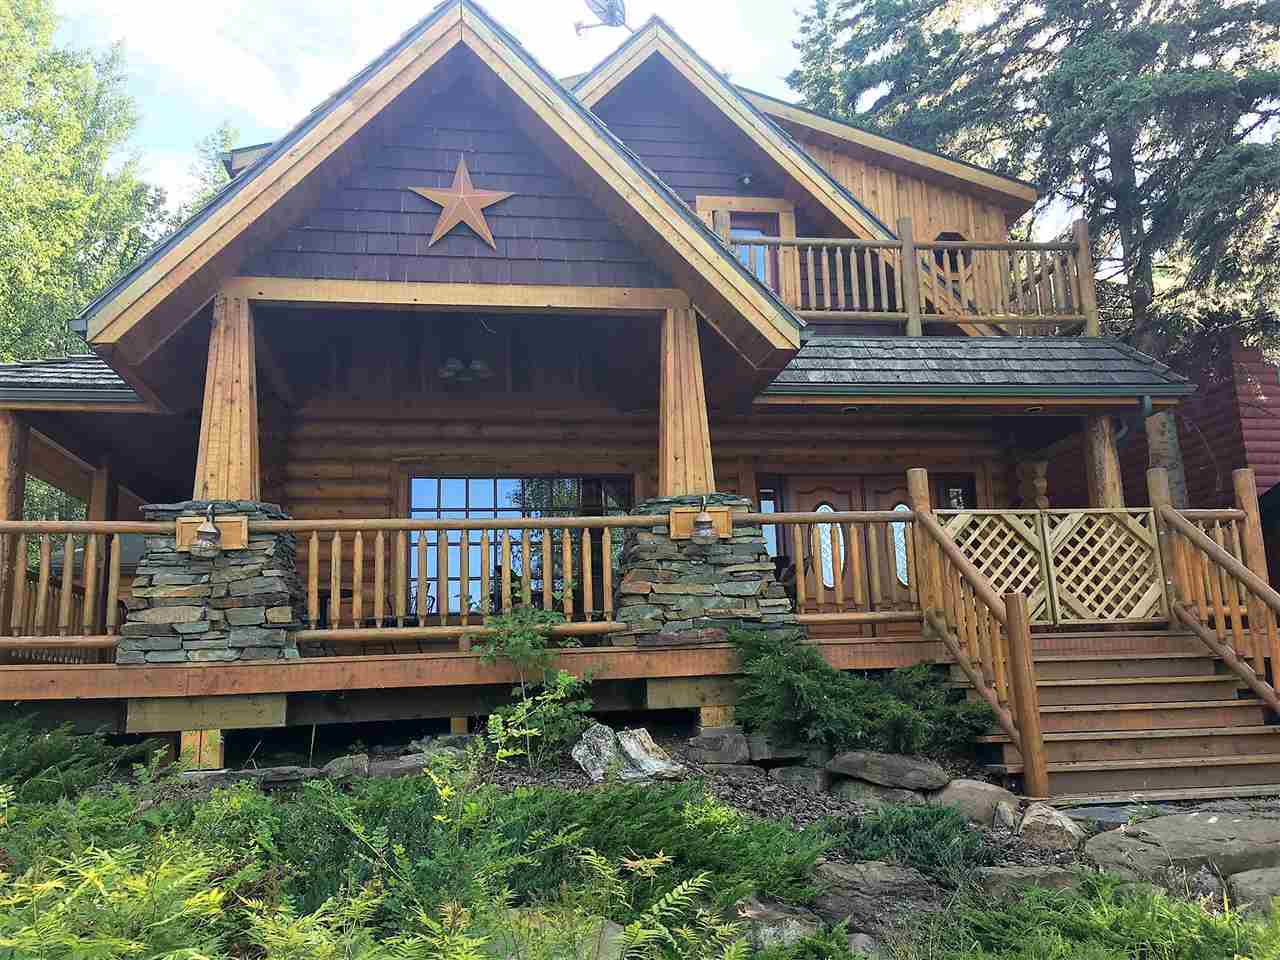 Great opportunity to own private retreat style home, 2 storey traditional log home has 3 bdrms with 1582 sqft. Main floor living design has stunning floor to ceiling w/b fireplace, well appointed kitchen with sit-up island, large open dining room, handy main floor laundry & 4pc bath. Half round log staircase takes you up to 3 bdrms, loft sitting area & 4pc bath. Elevated 60'x 120' lot has amazing views from large covered , wrap-around deck & upper balcony. ICF foundation and cedar shakes. In the back is a firepit & deck area + a 28'x24' garage, insulated, lined and has a small woodstove. Municipal reserve and towering spruce trees add privacy, close to playground, lake access & The Village. Quaint lakeside living at its best! For all waste water updates go to www.svofficepl.com